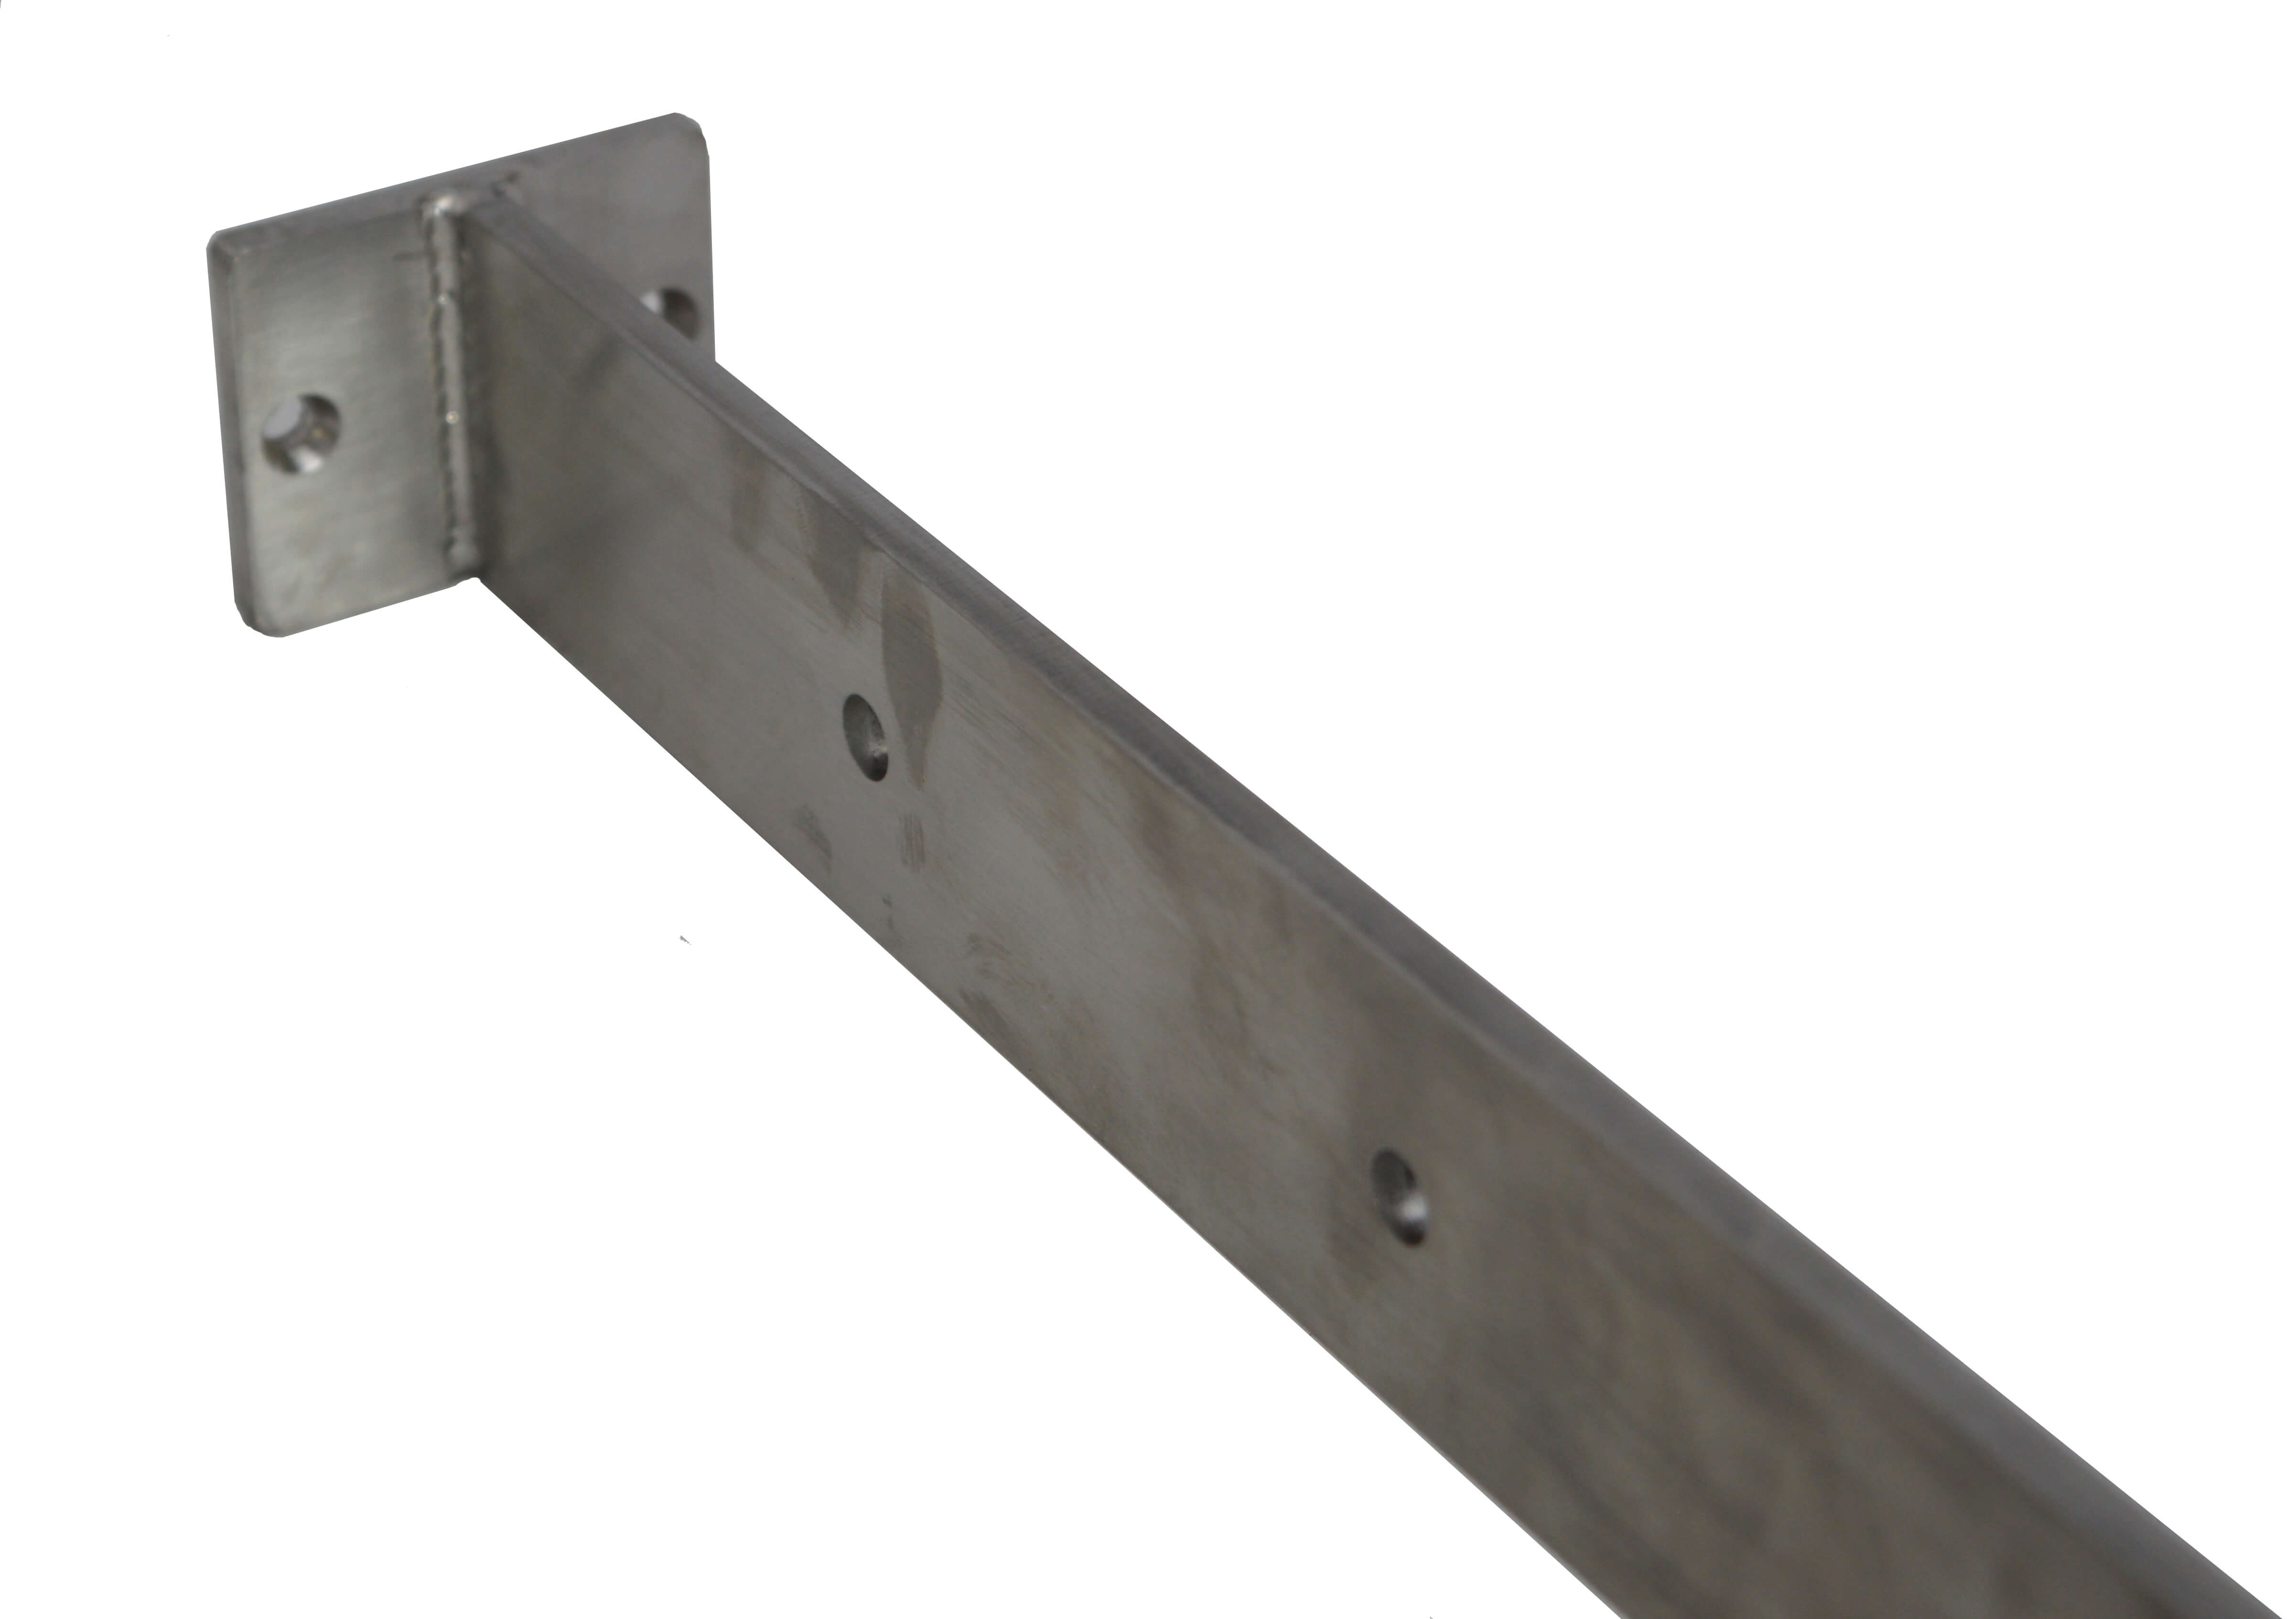 Stainless 316 Flat Bar and Intermediate Posts